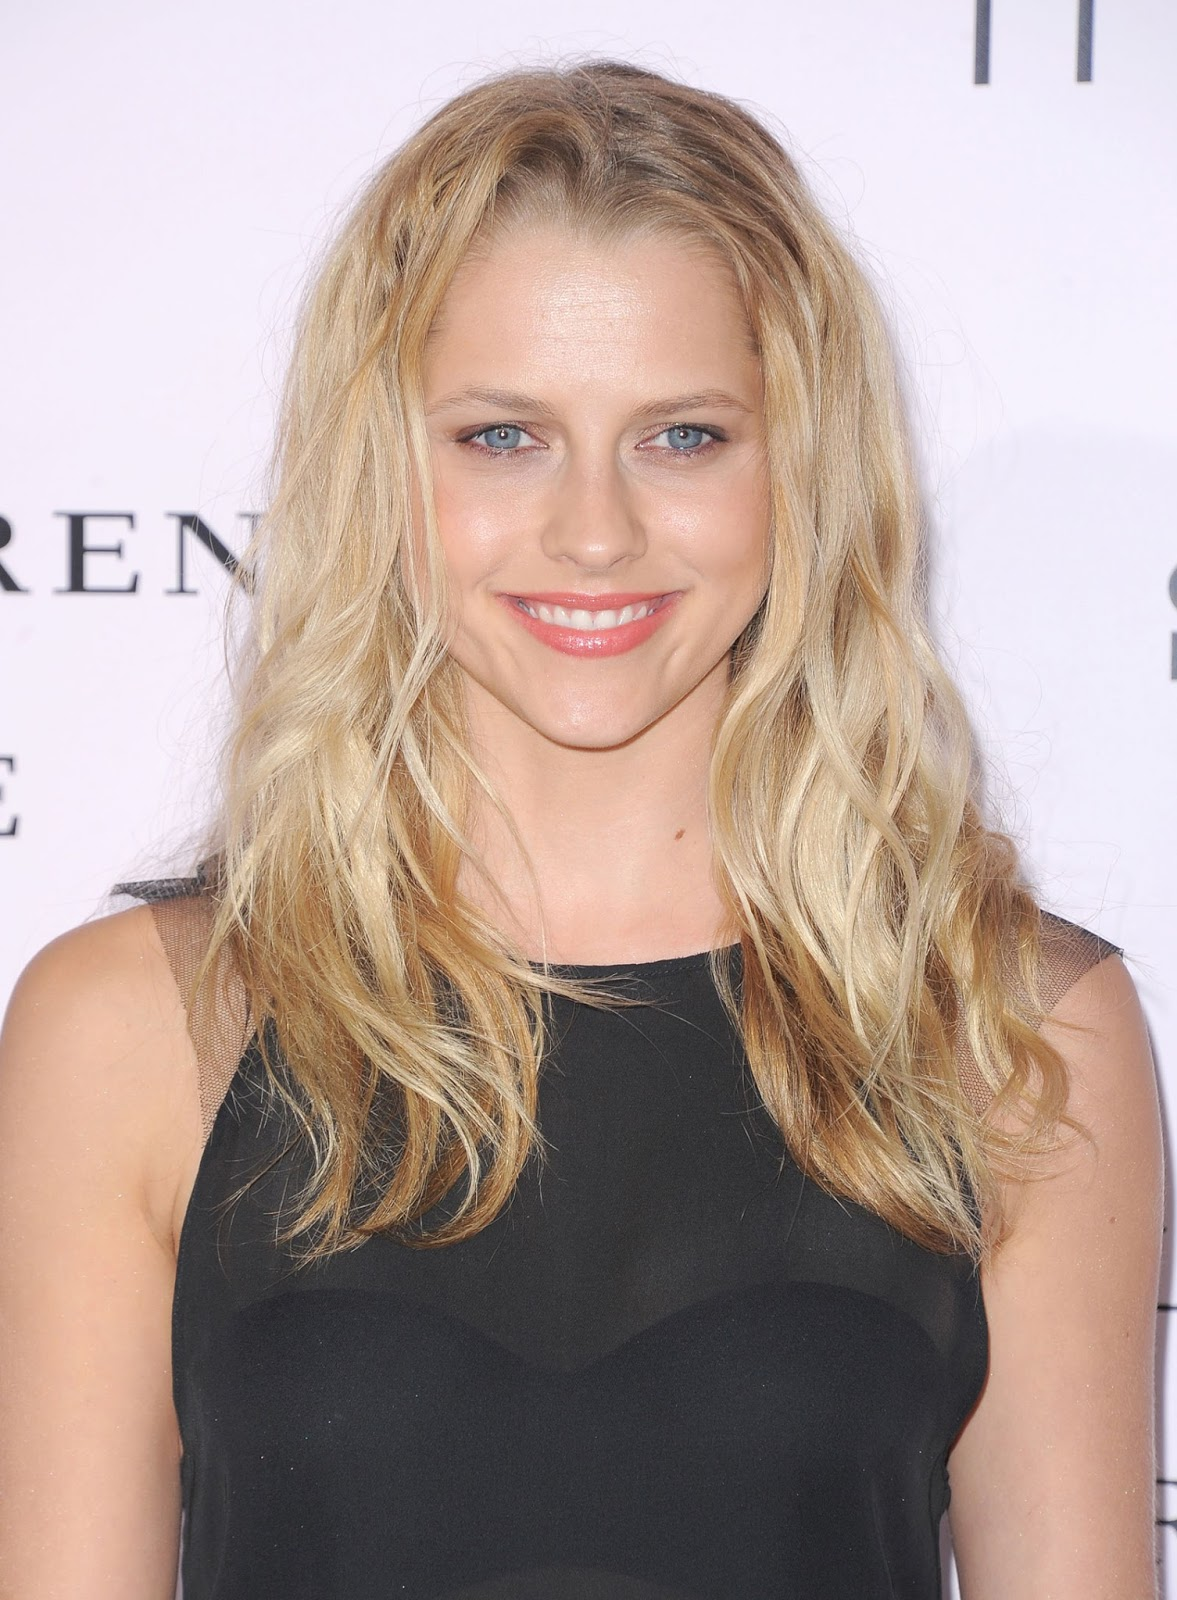 HQ Photos of Teresa Palmer in Black dress at The Vow Premiere in Los Angeles